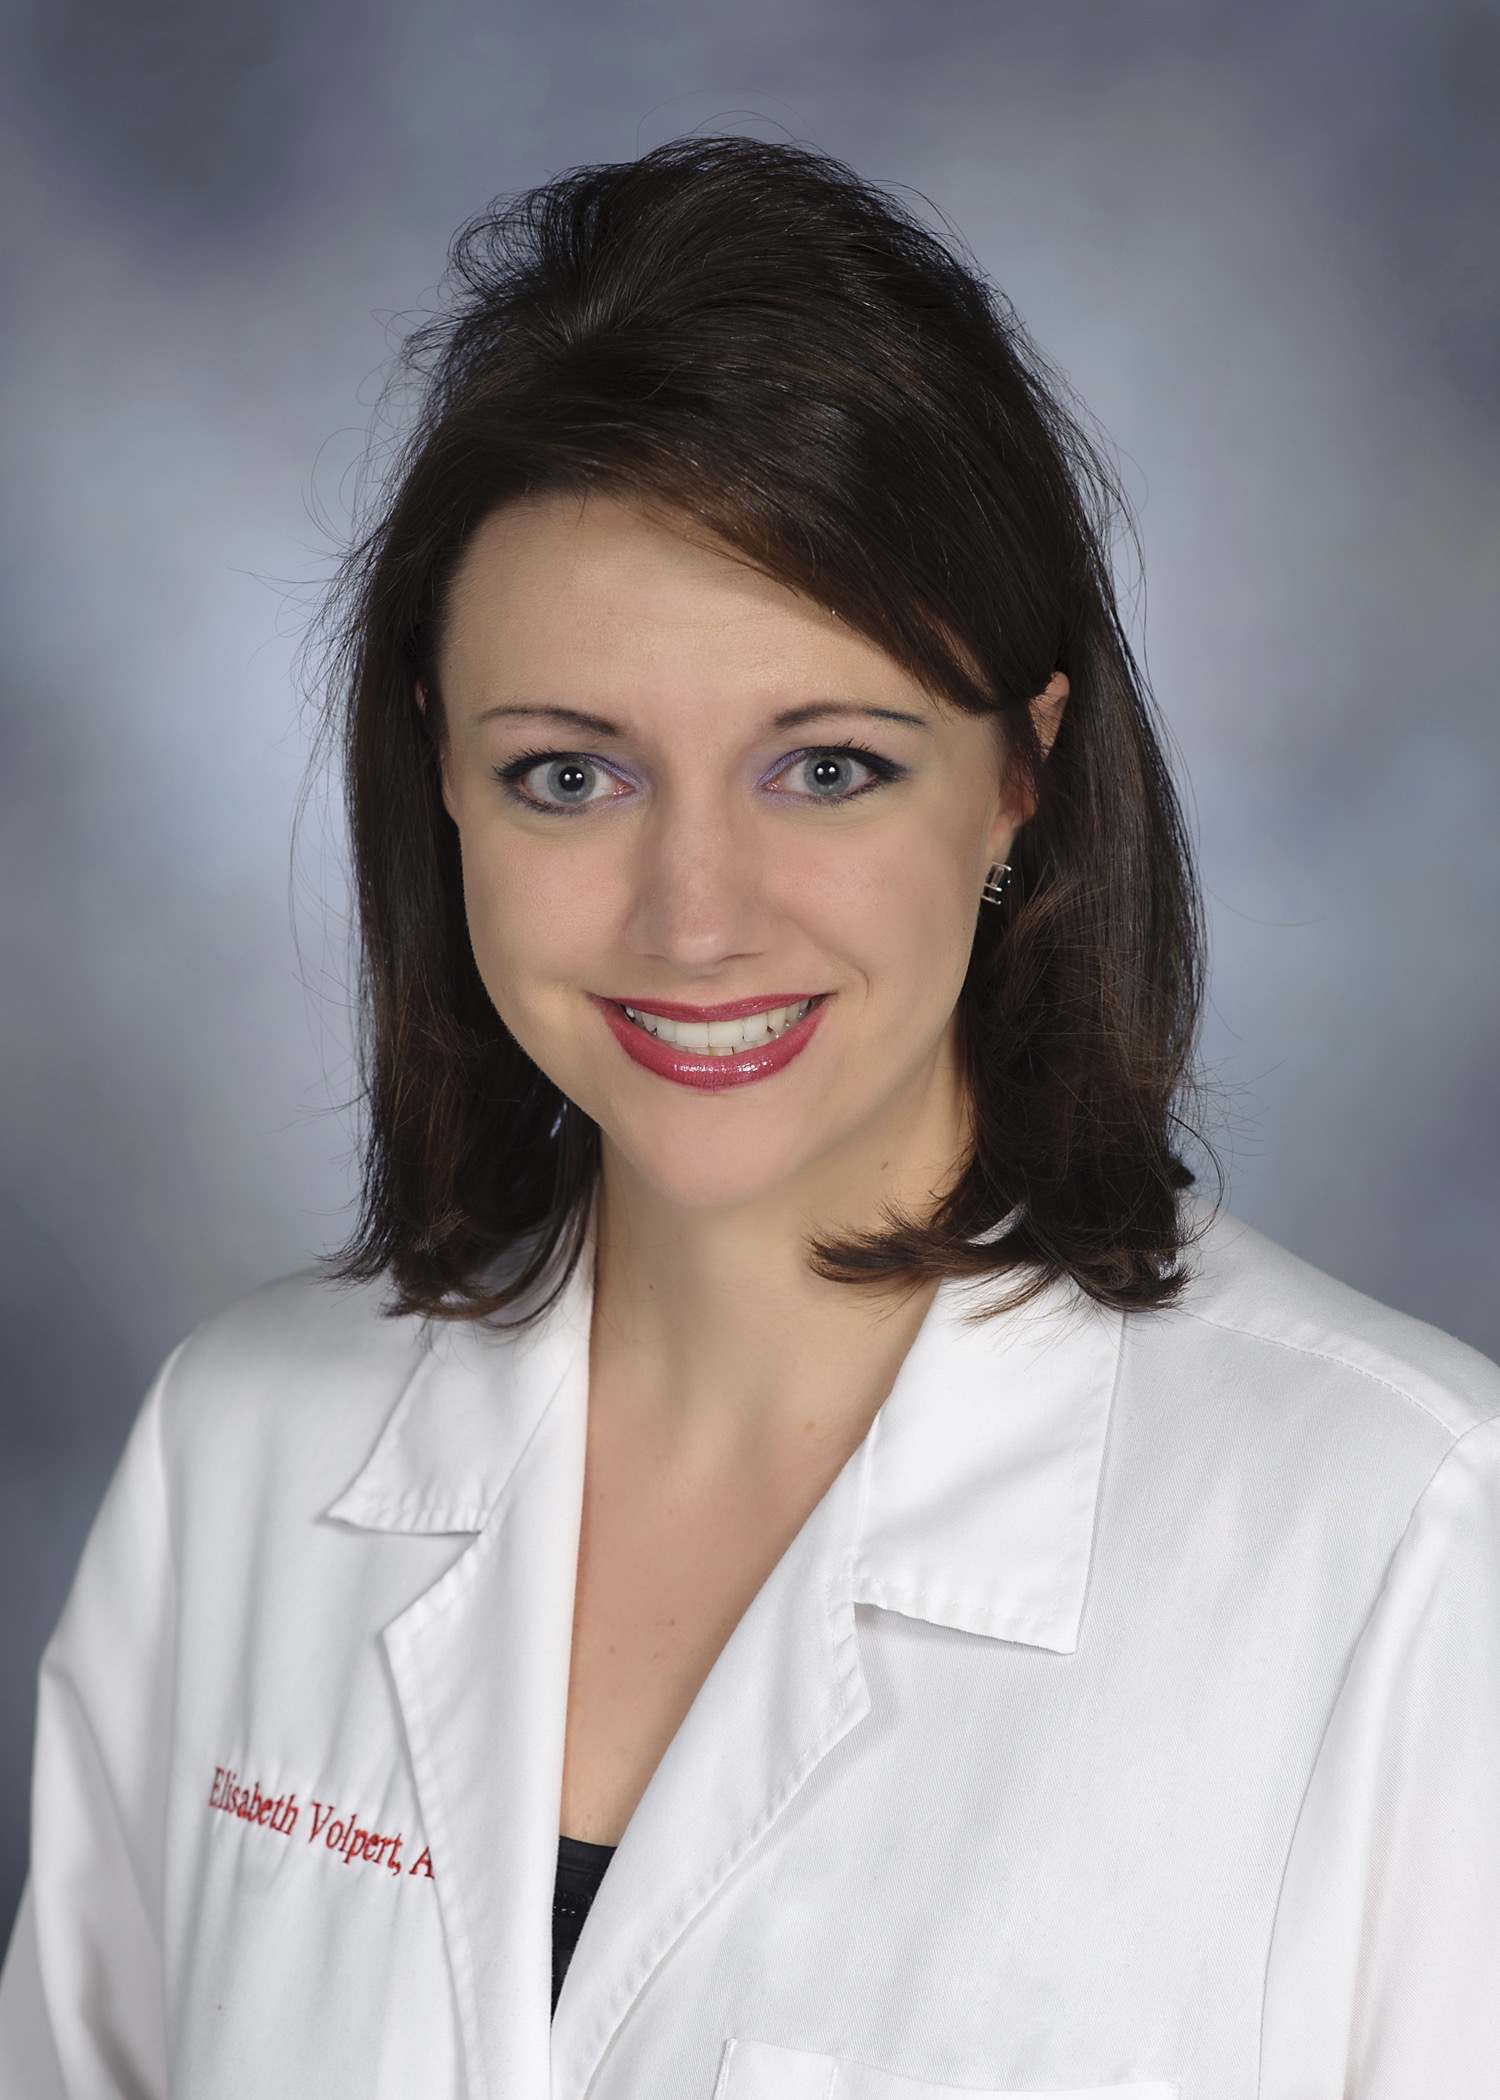 Family nurse practitioner, DNP student aims to improve primary care